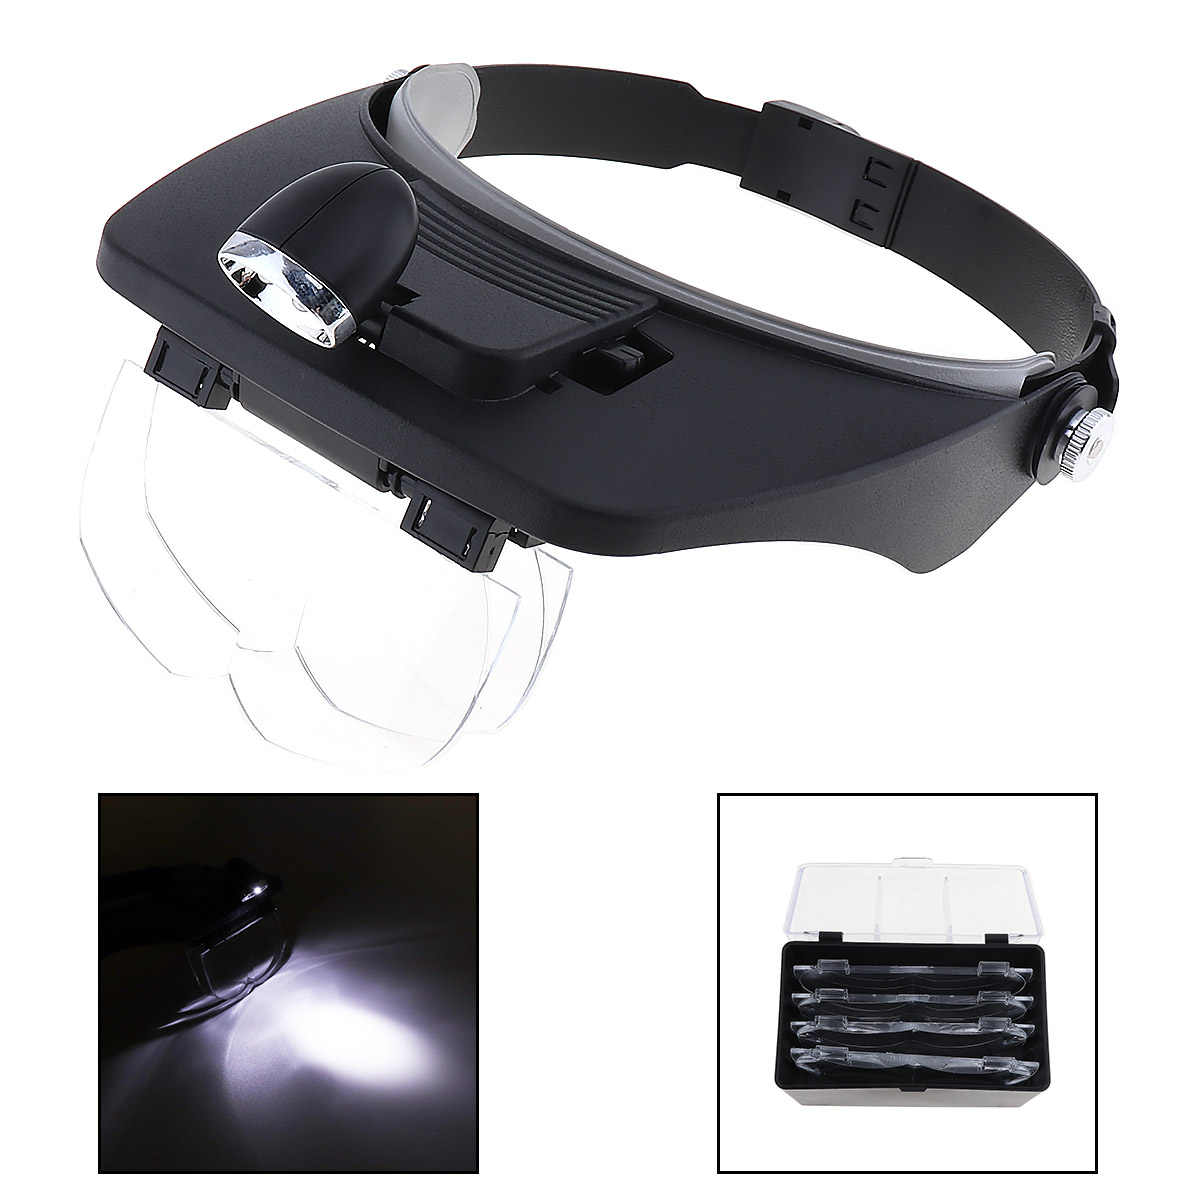 cb4f7fd4efee Detail Feedback Questions about Head Magnifying Glasses with LED 10 Power  Magnifier for Reading Optivisor Magnifying Glass Loupes Jewelry Watch Repair  3 ...